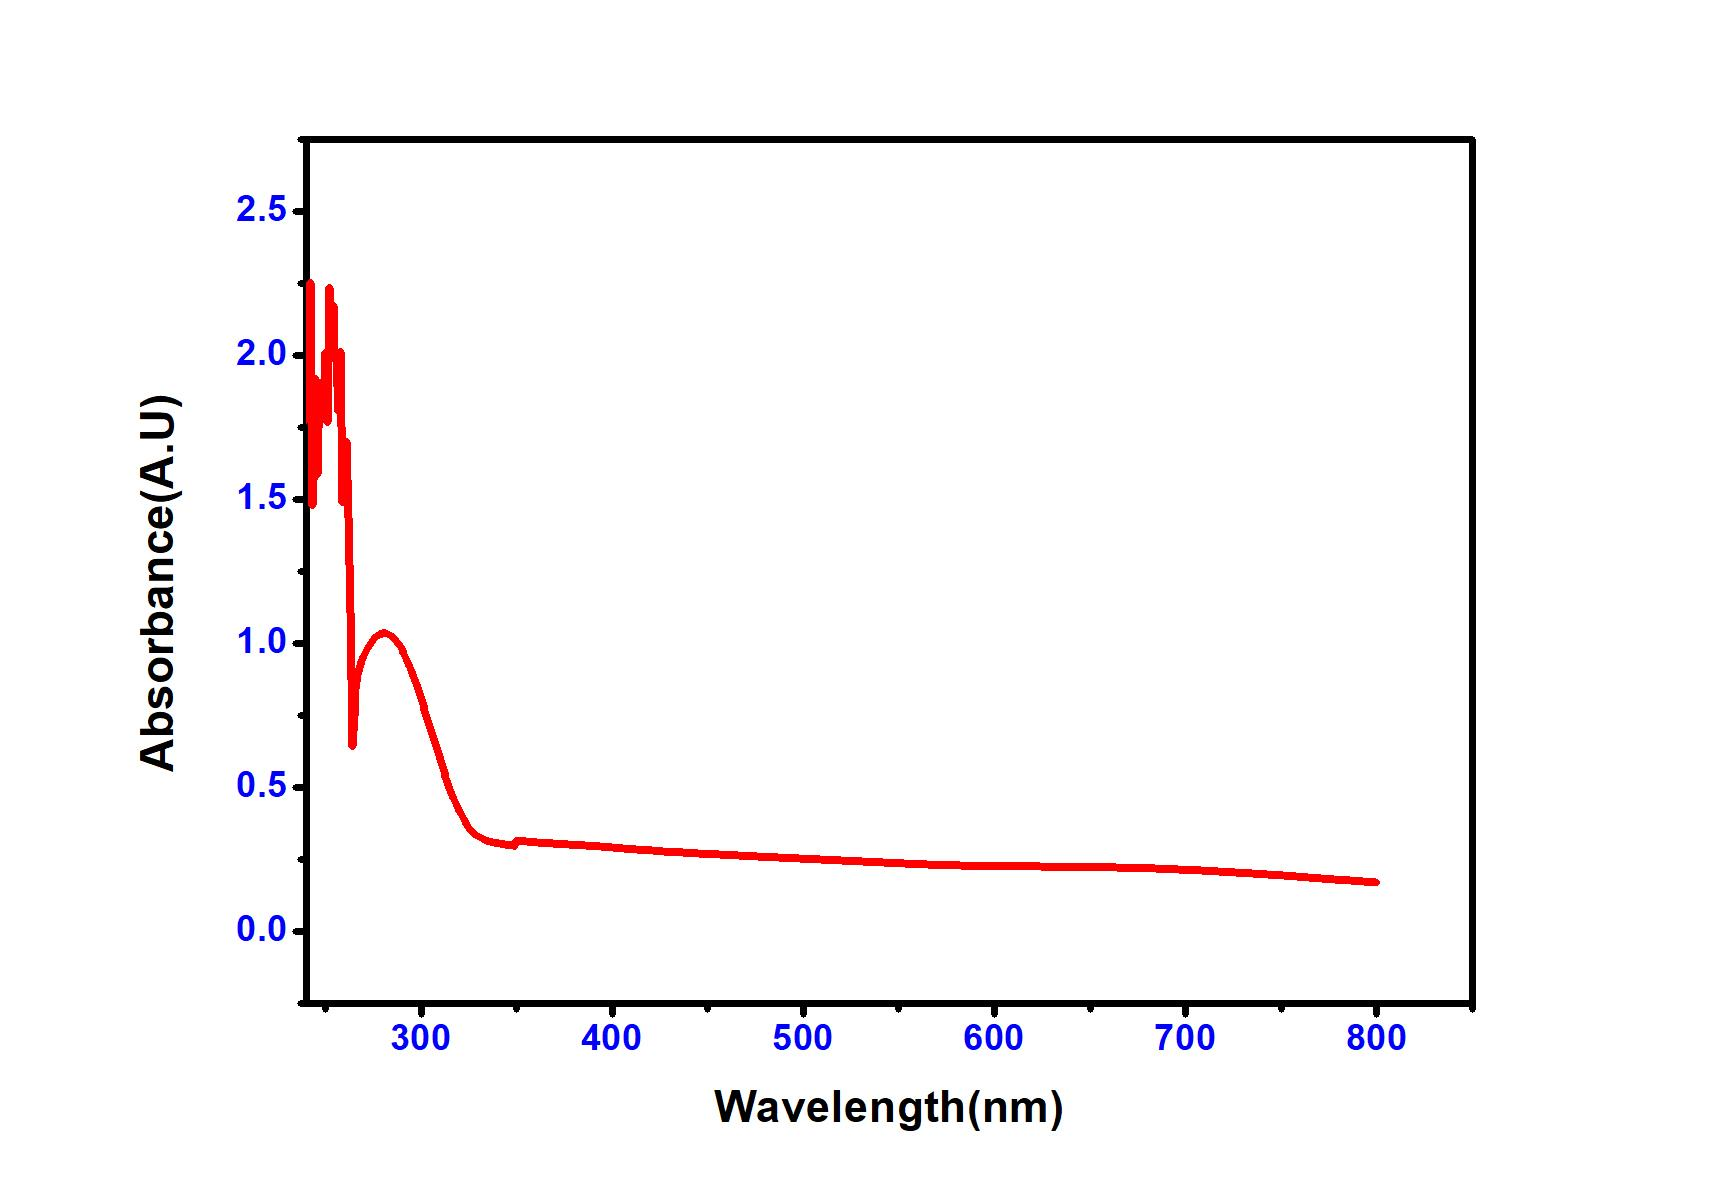 Abs vs Wavelength_1.jpg